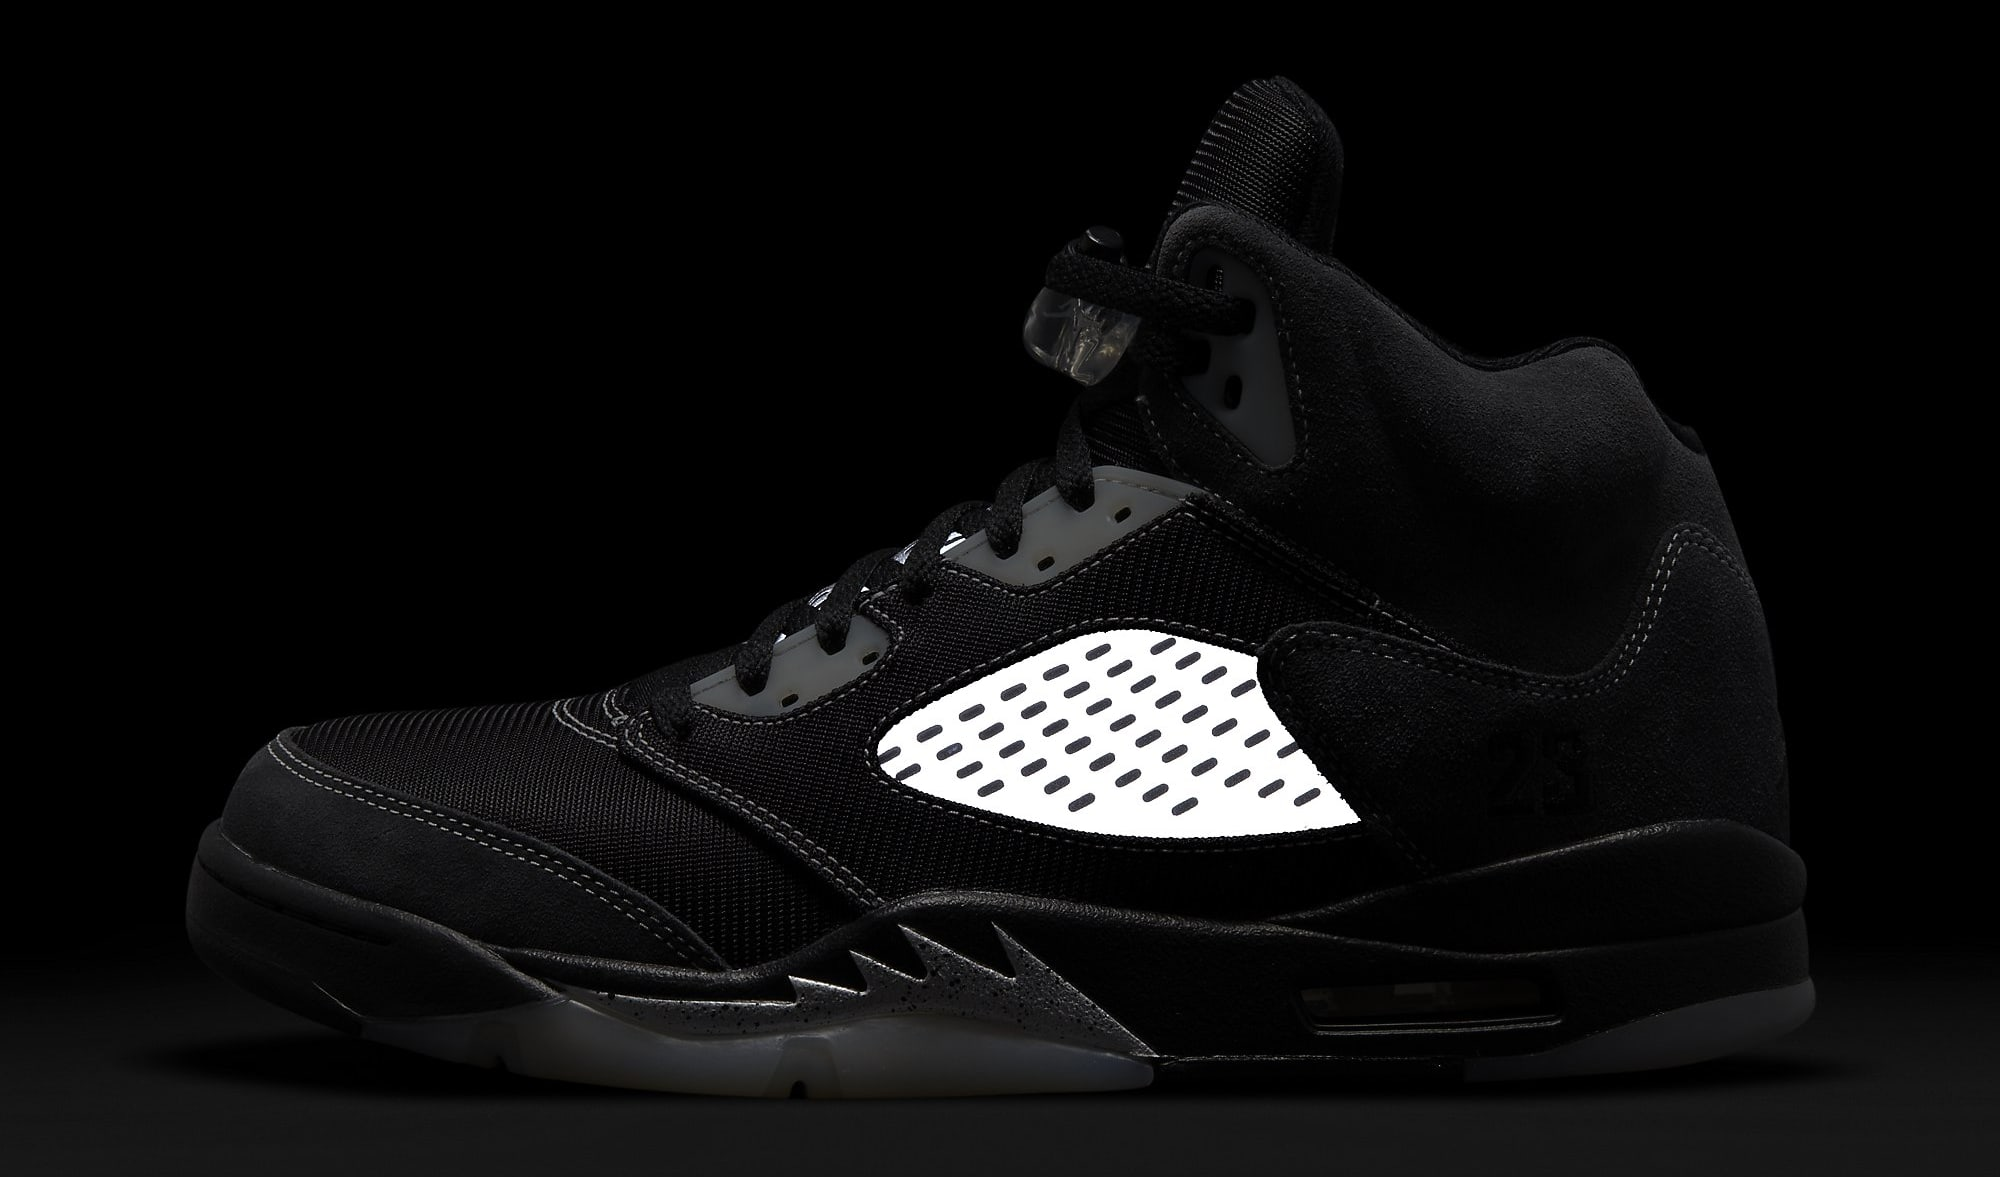 Air Jordan 5 Retro 'Anthracite' DB0731-001 3M